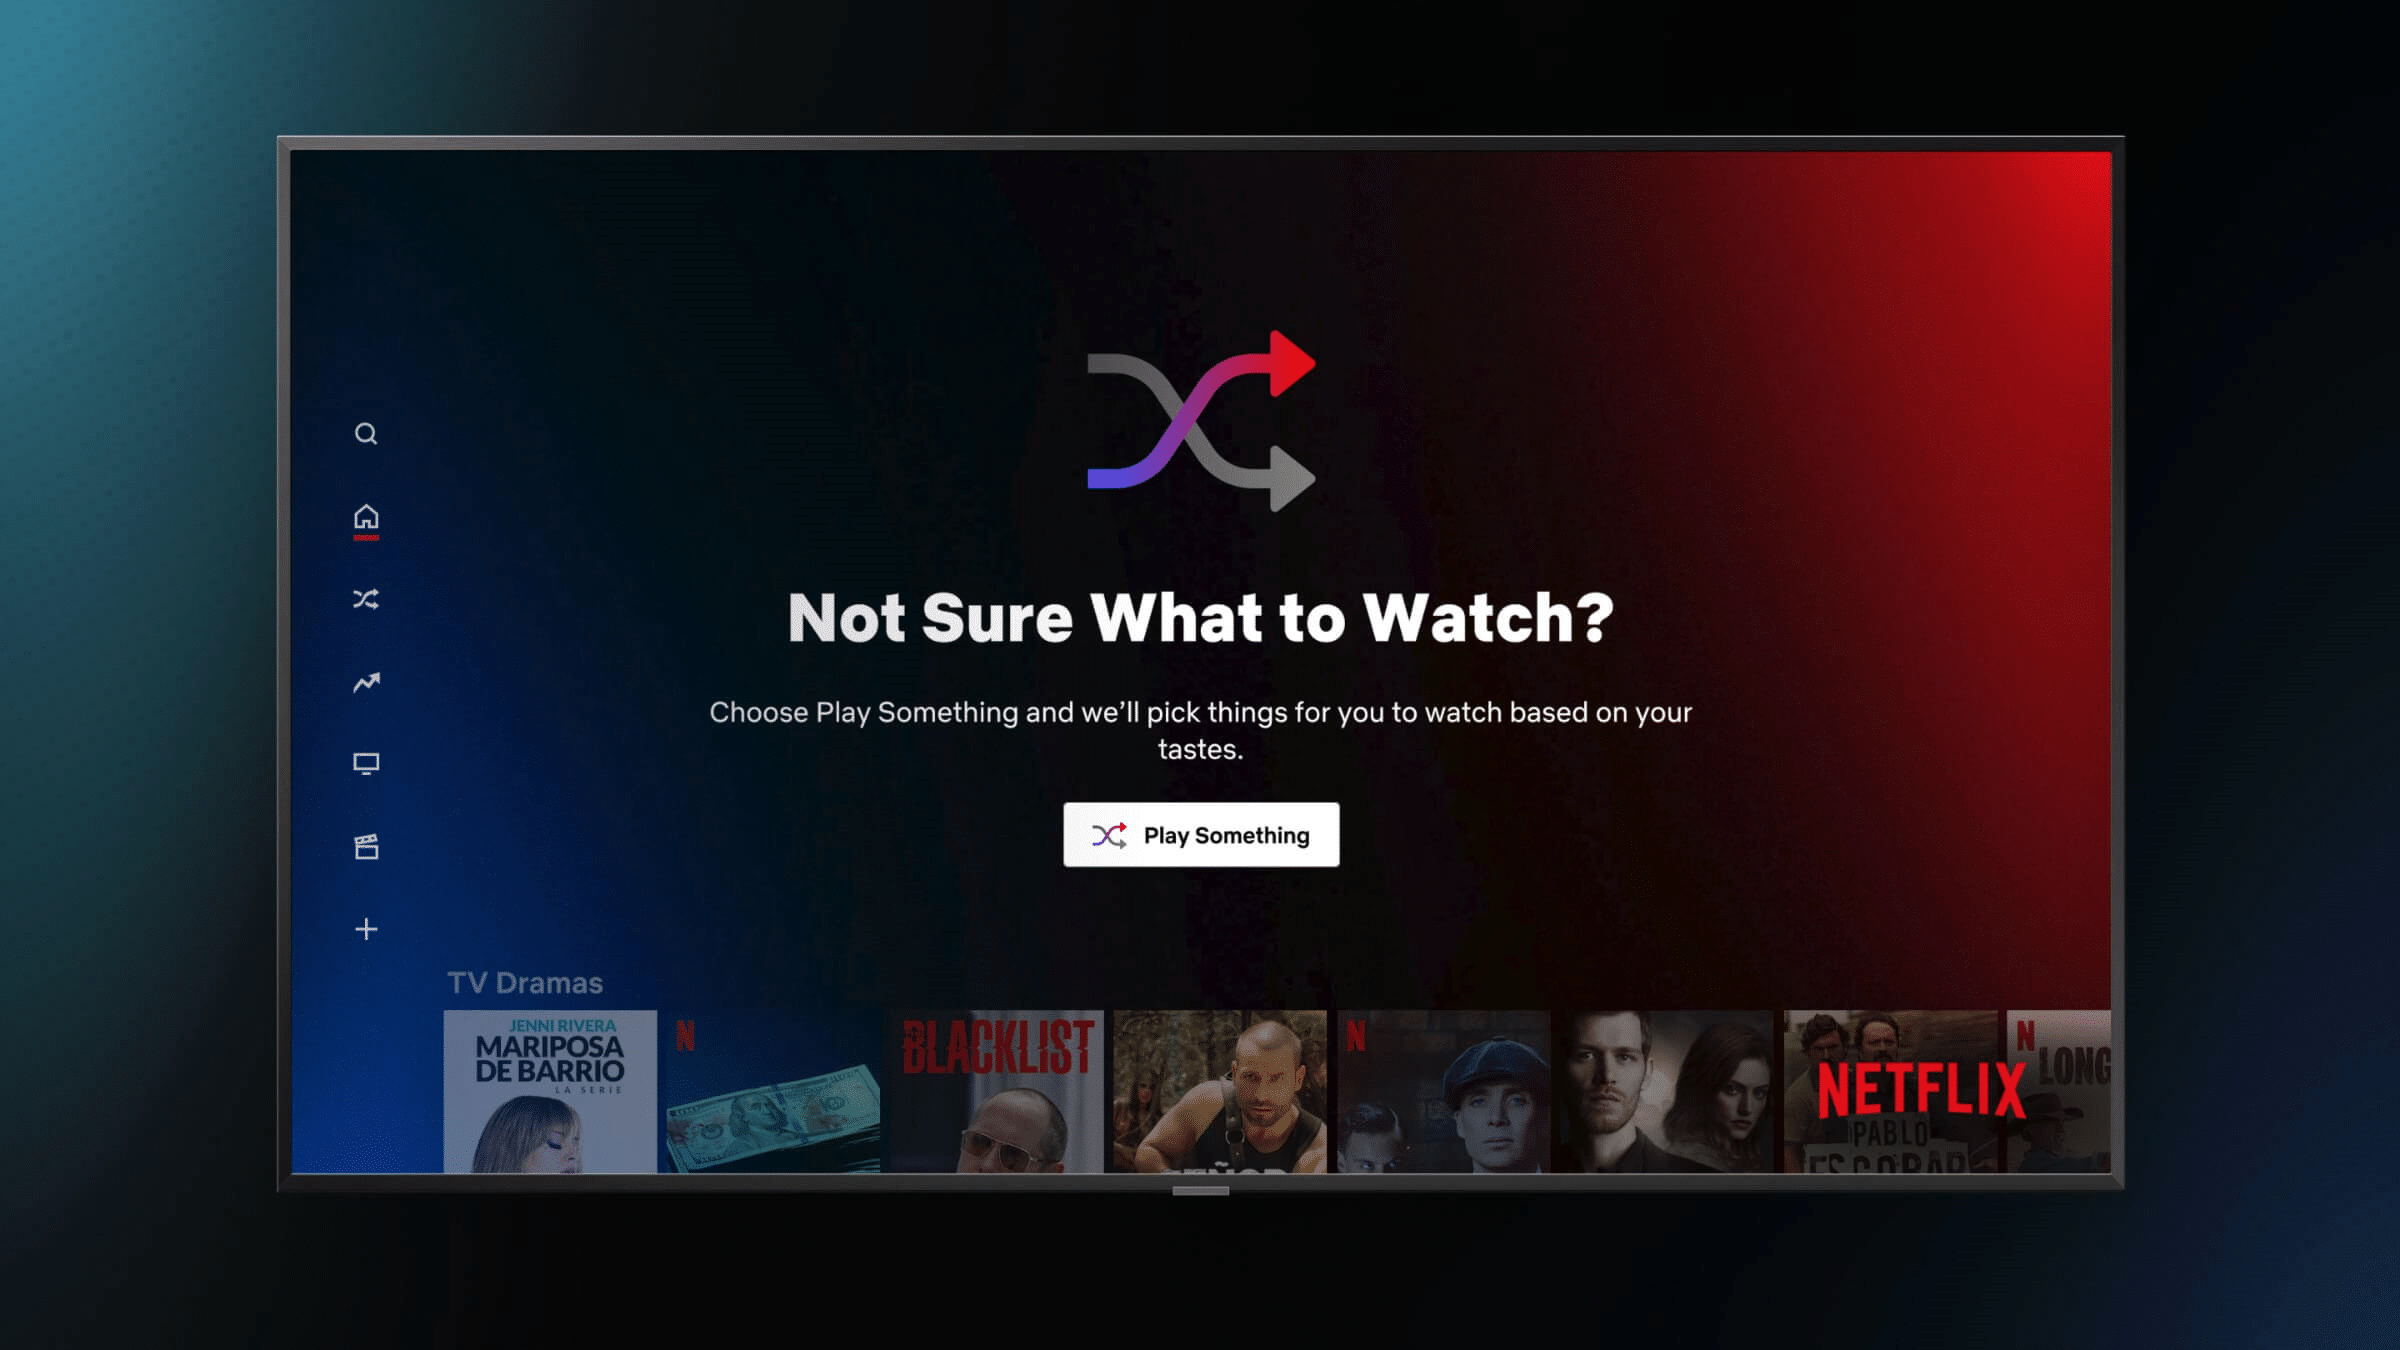 """The new Netflix feature that allows people to click on a """"Play Something"""" button and watch a movie or series based on their tastes."""